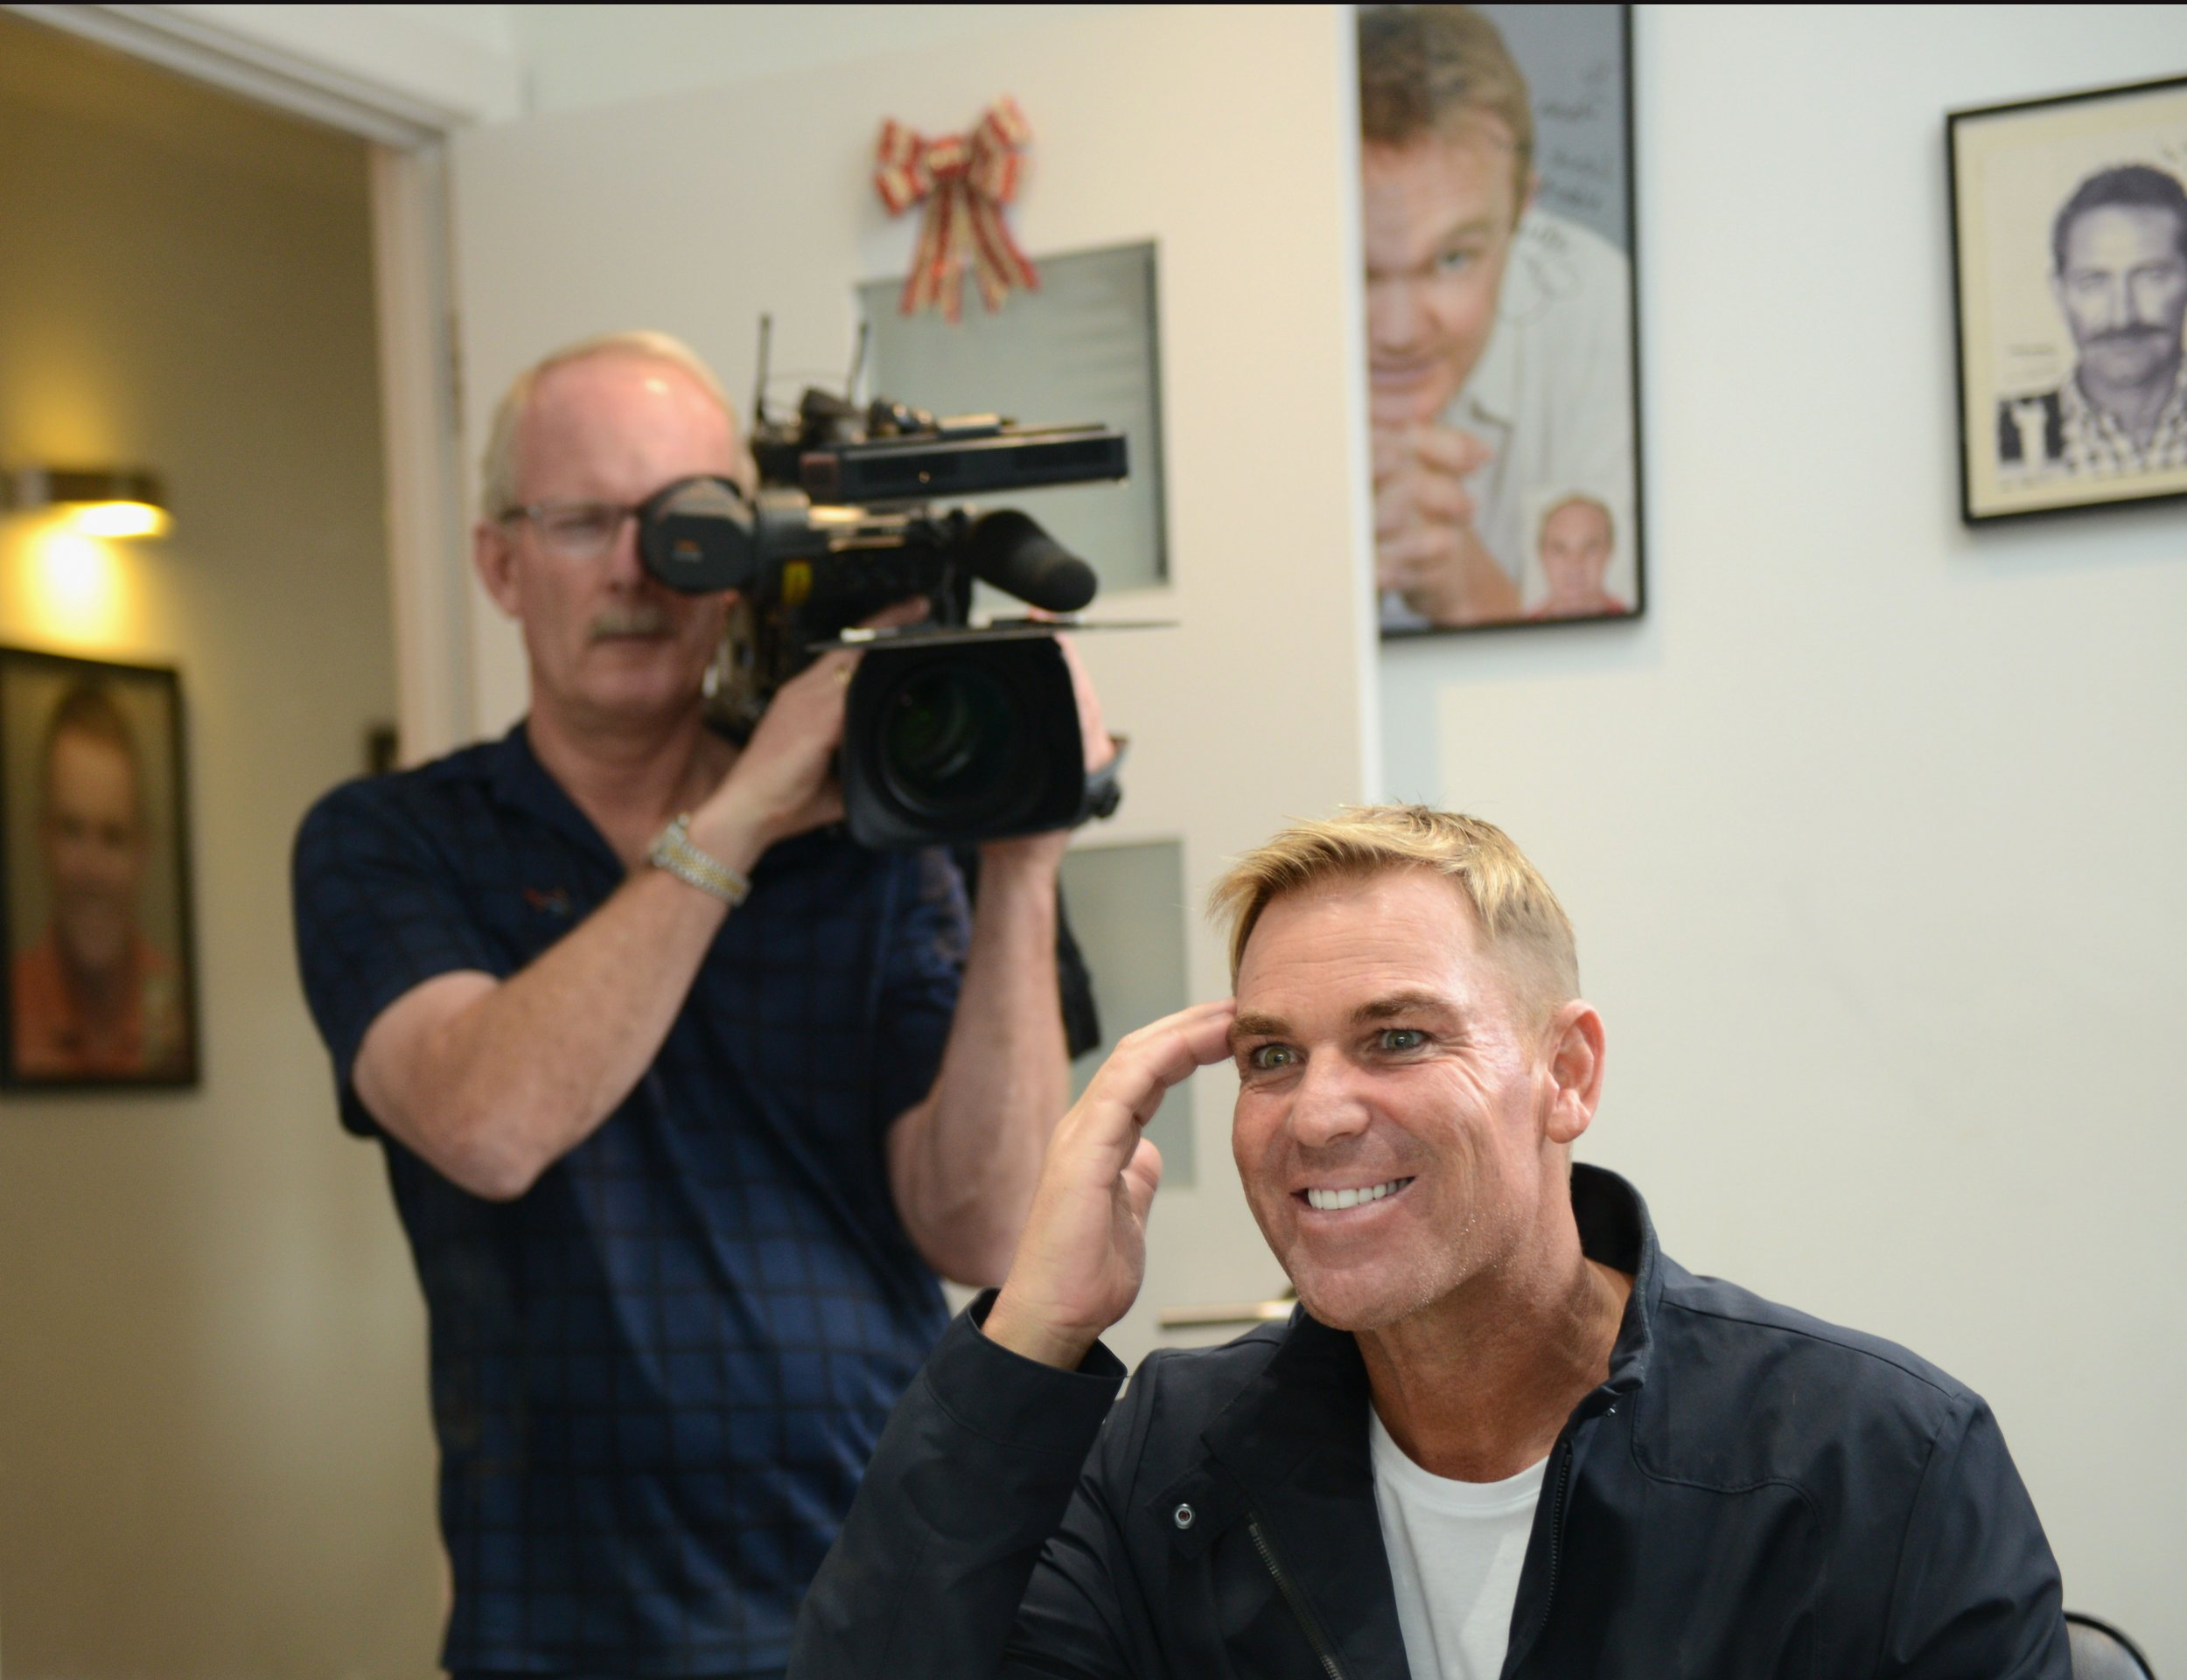 Shane Warne has gone from spin wizard to conservative commentator.